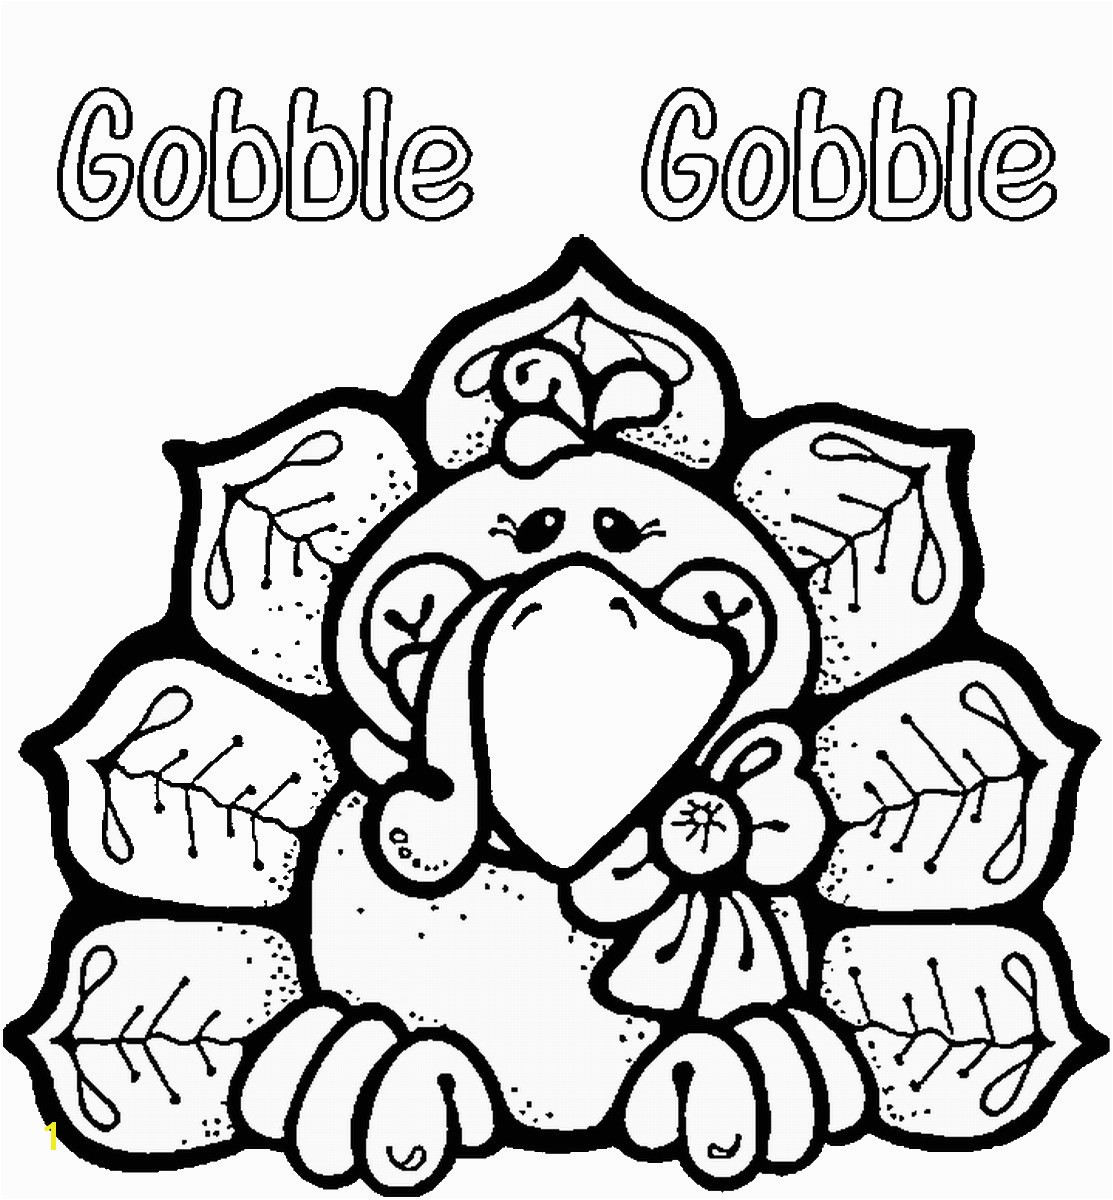 Autumn Coloring Pages Awesome Preschool Fall Coloring Pages Best Fall Coloring Pages 0d Page